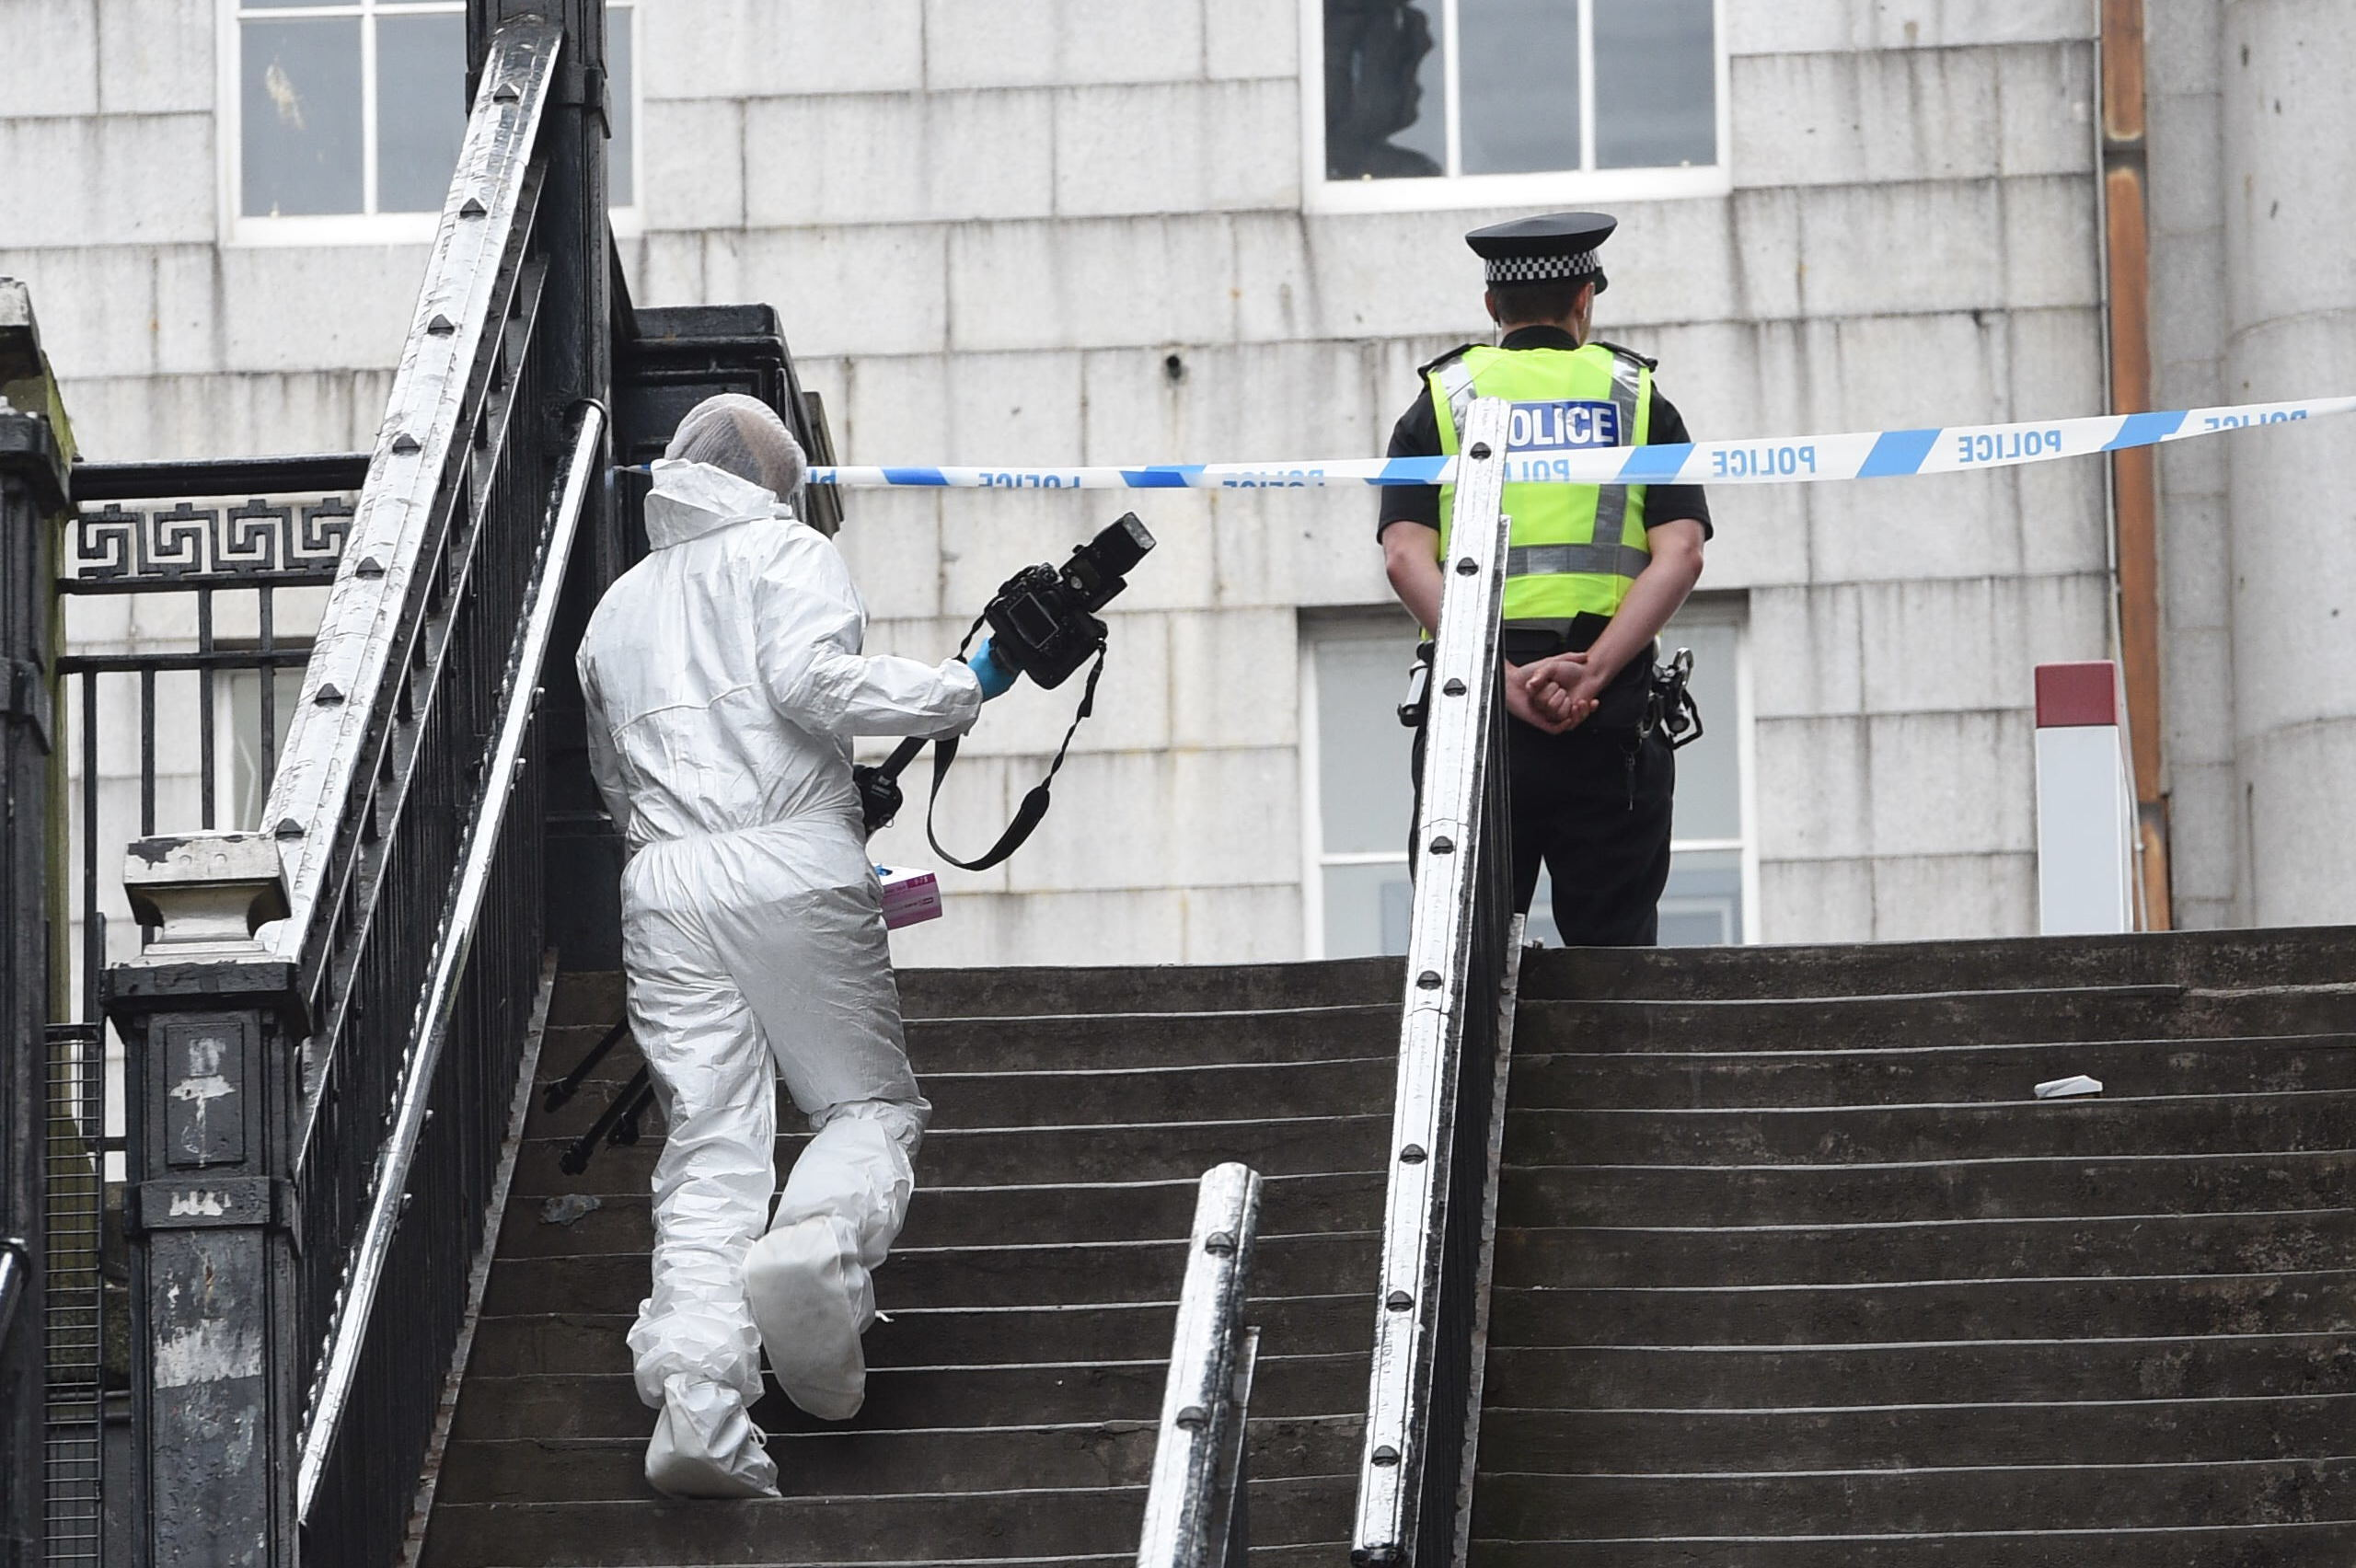 Officers at the scene of the incident